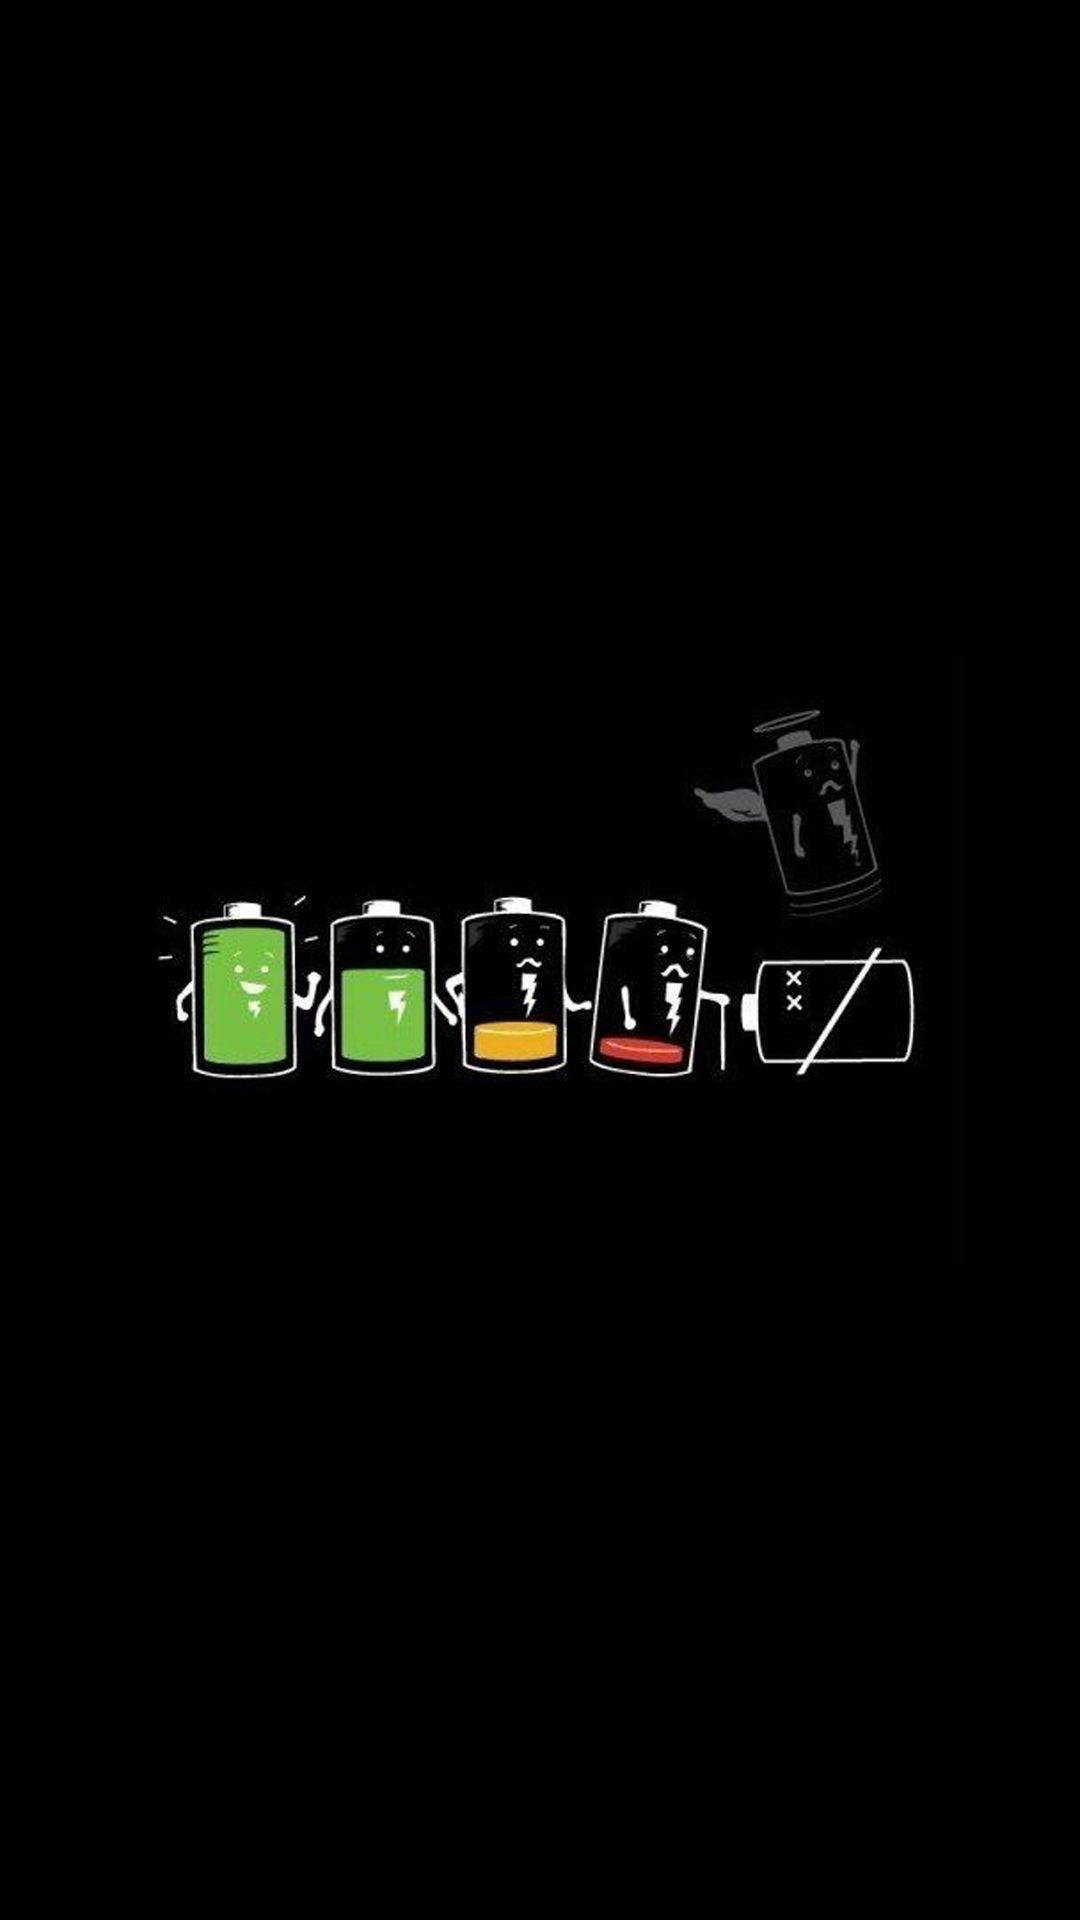 the battery life. funny cartoon art iphone wallpapers. tap to see